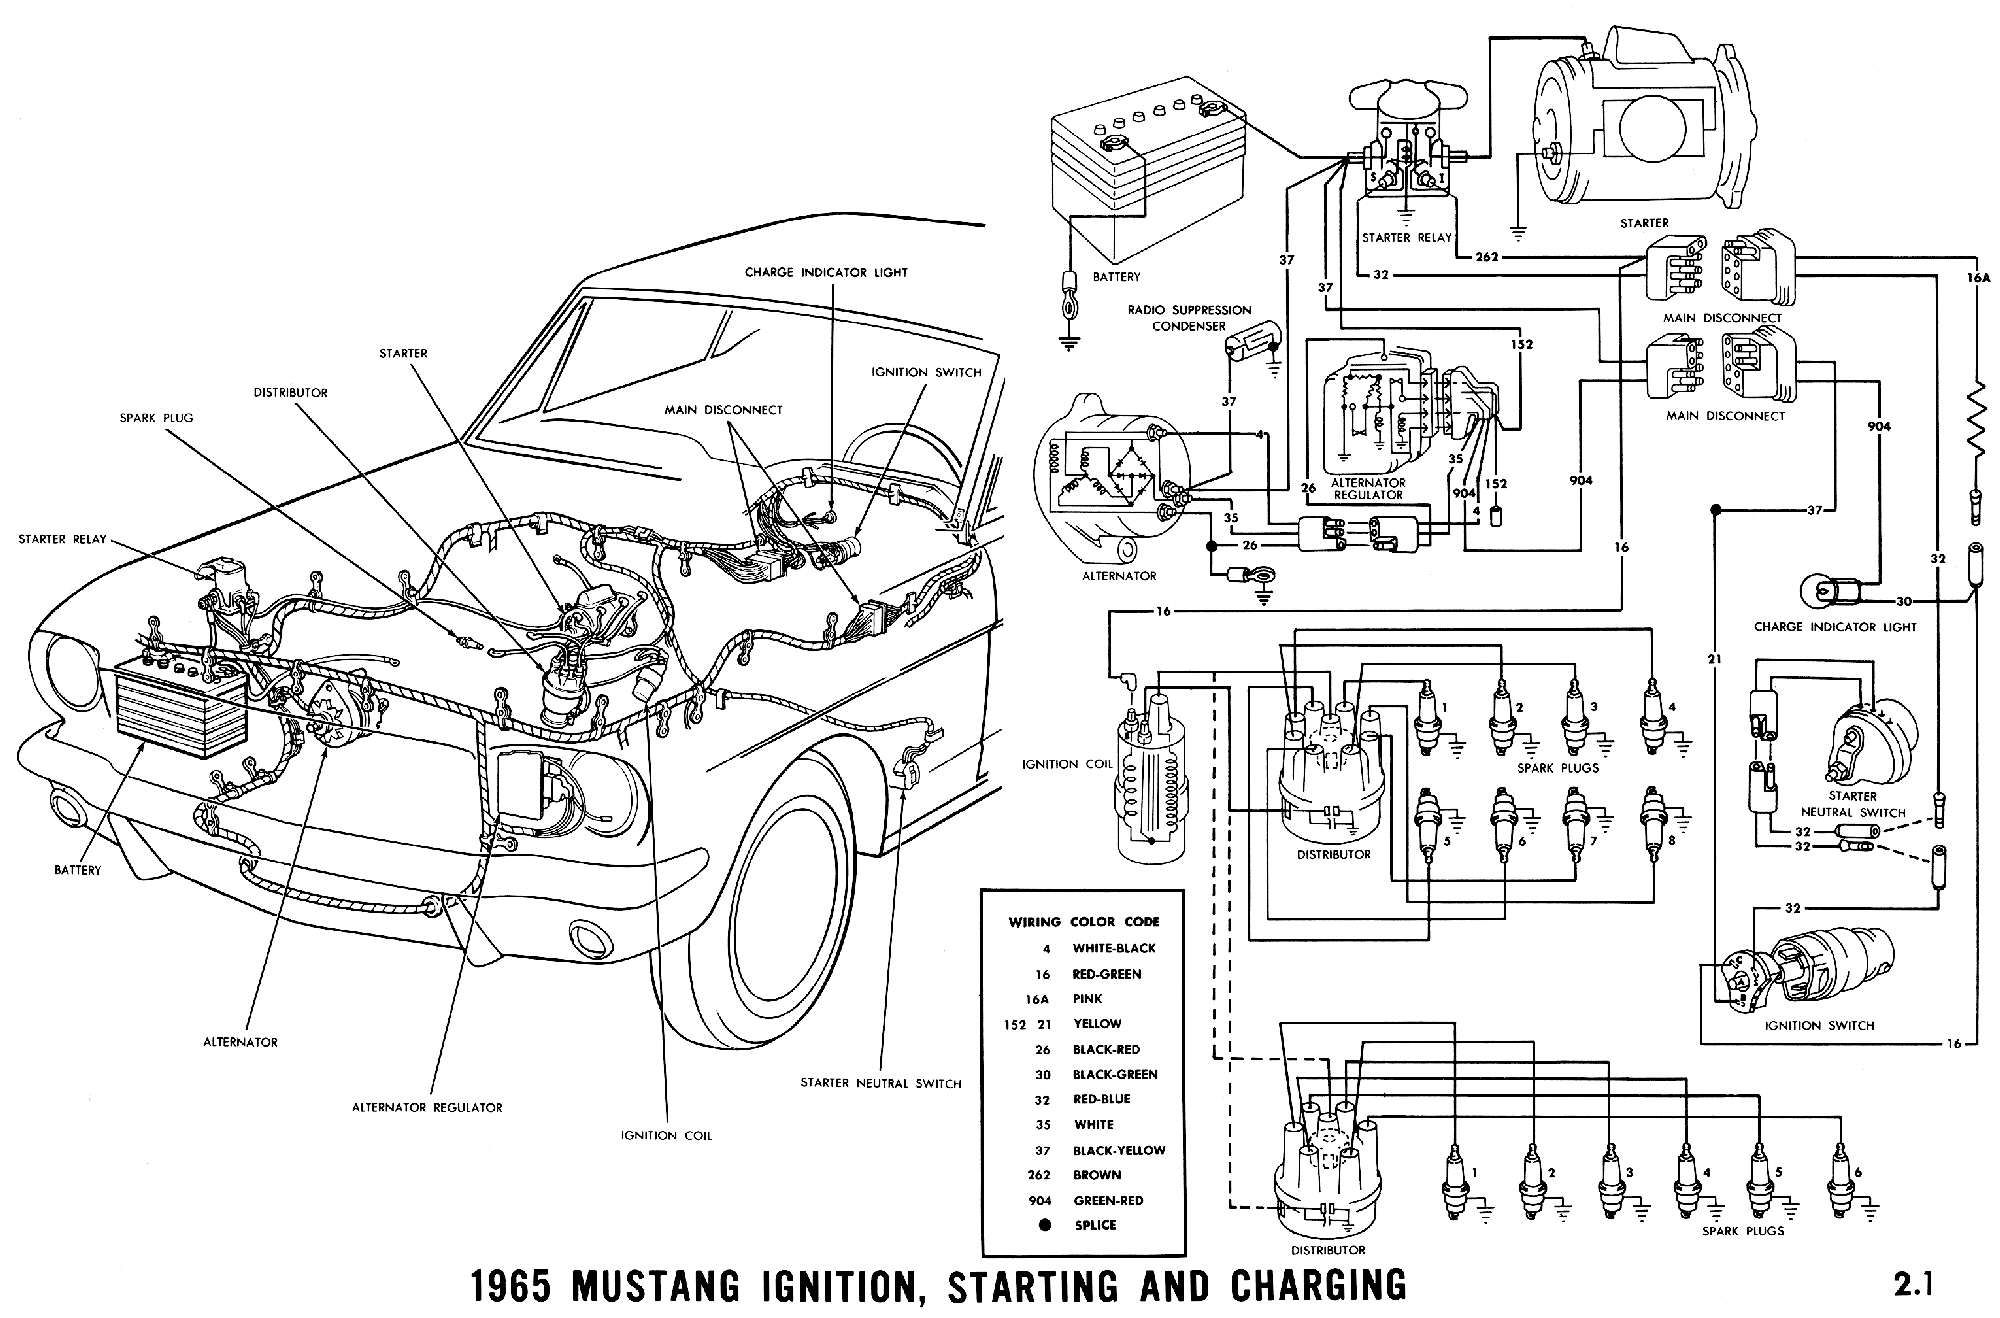 1965 mustang wiring diagrams average joe restoration mustang 1965 mustang wiring diagrams average joe restoration